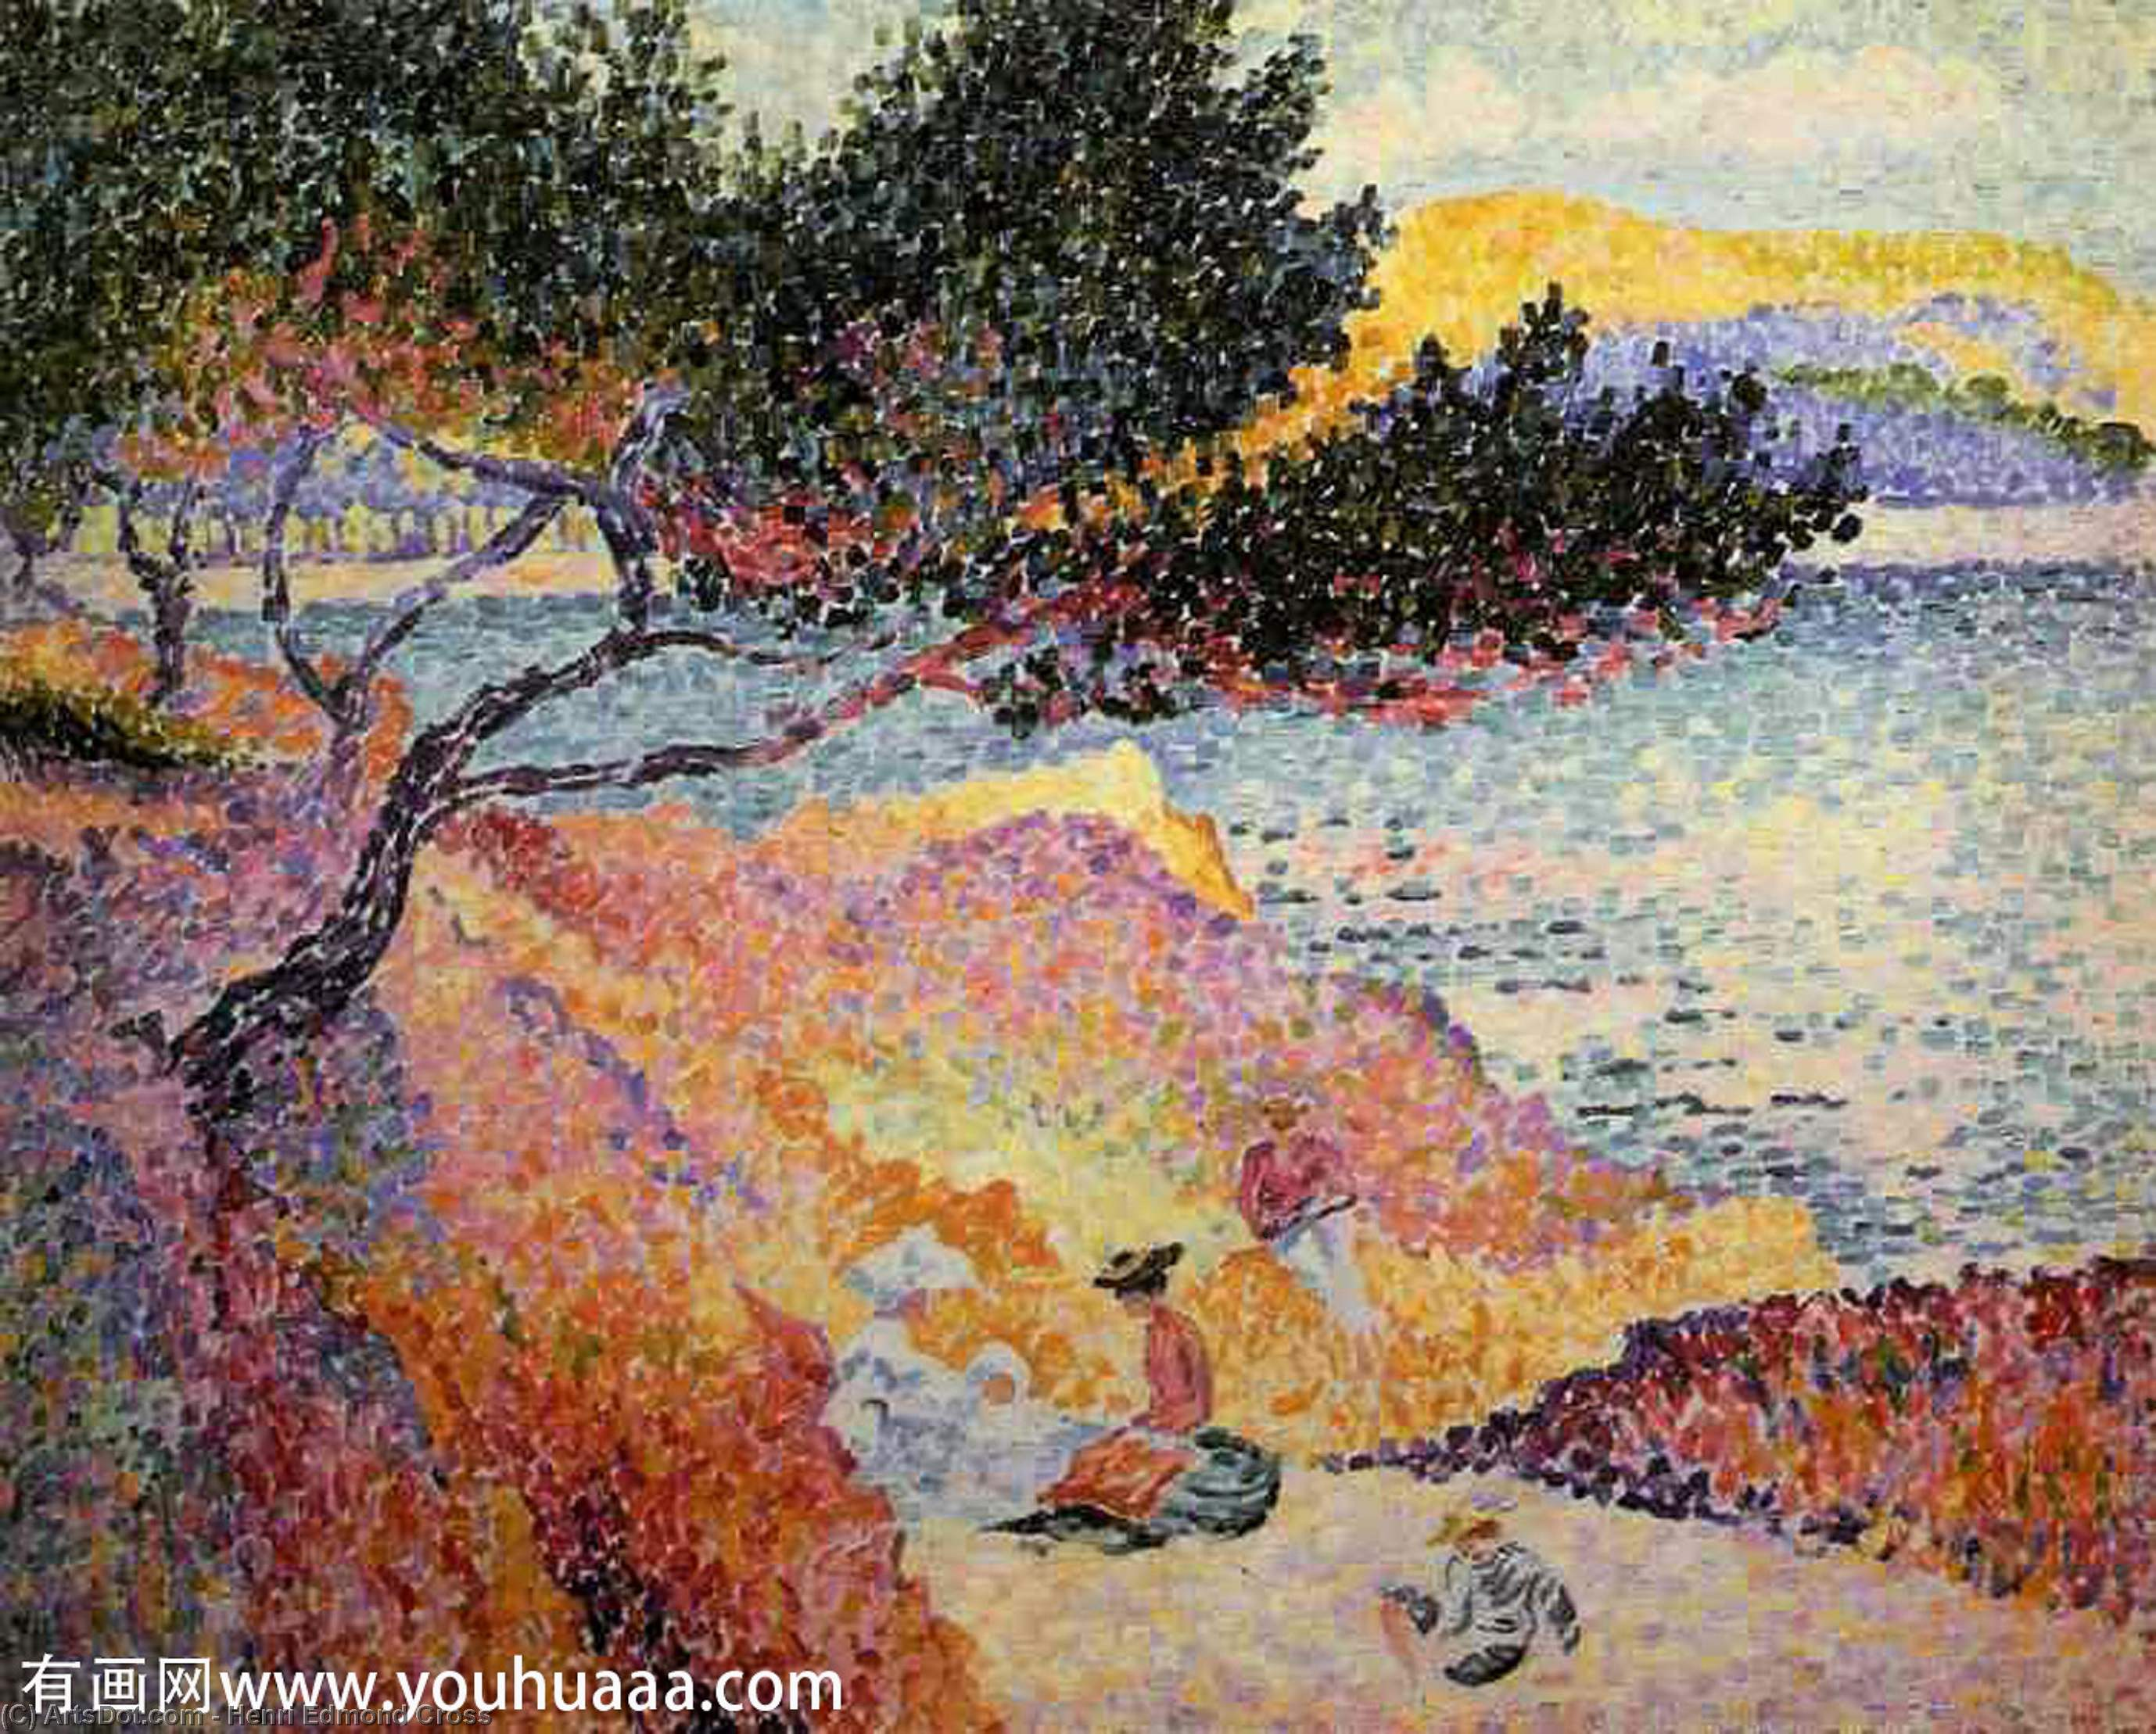 La bahía en Cavaliere de Henri Edmond Cross (1856-1910, France)